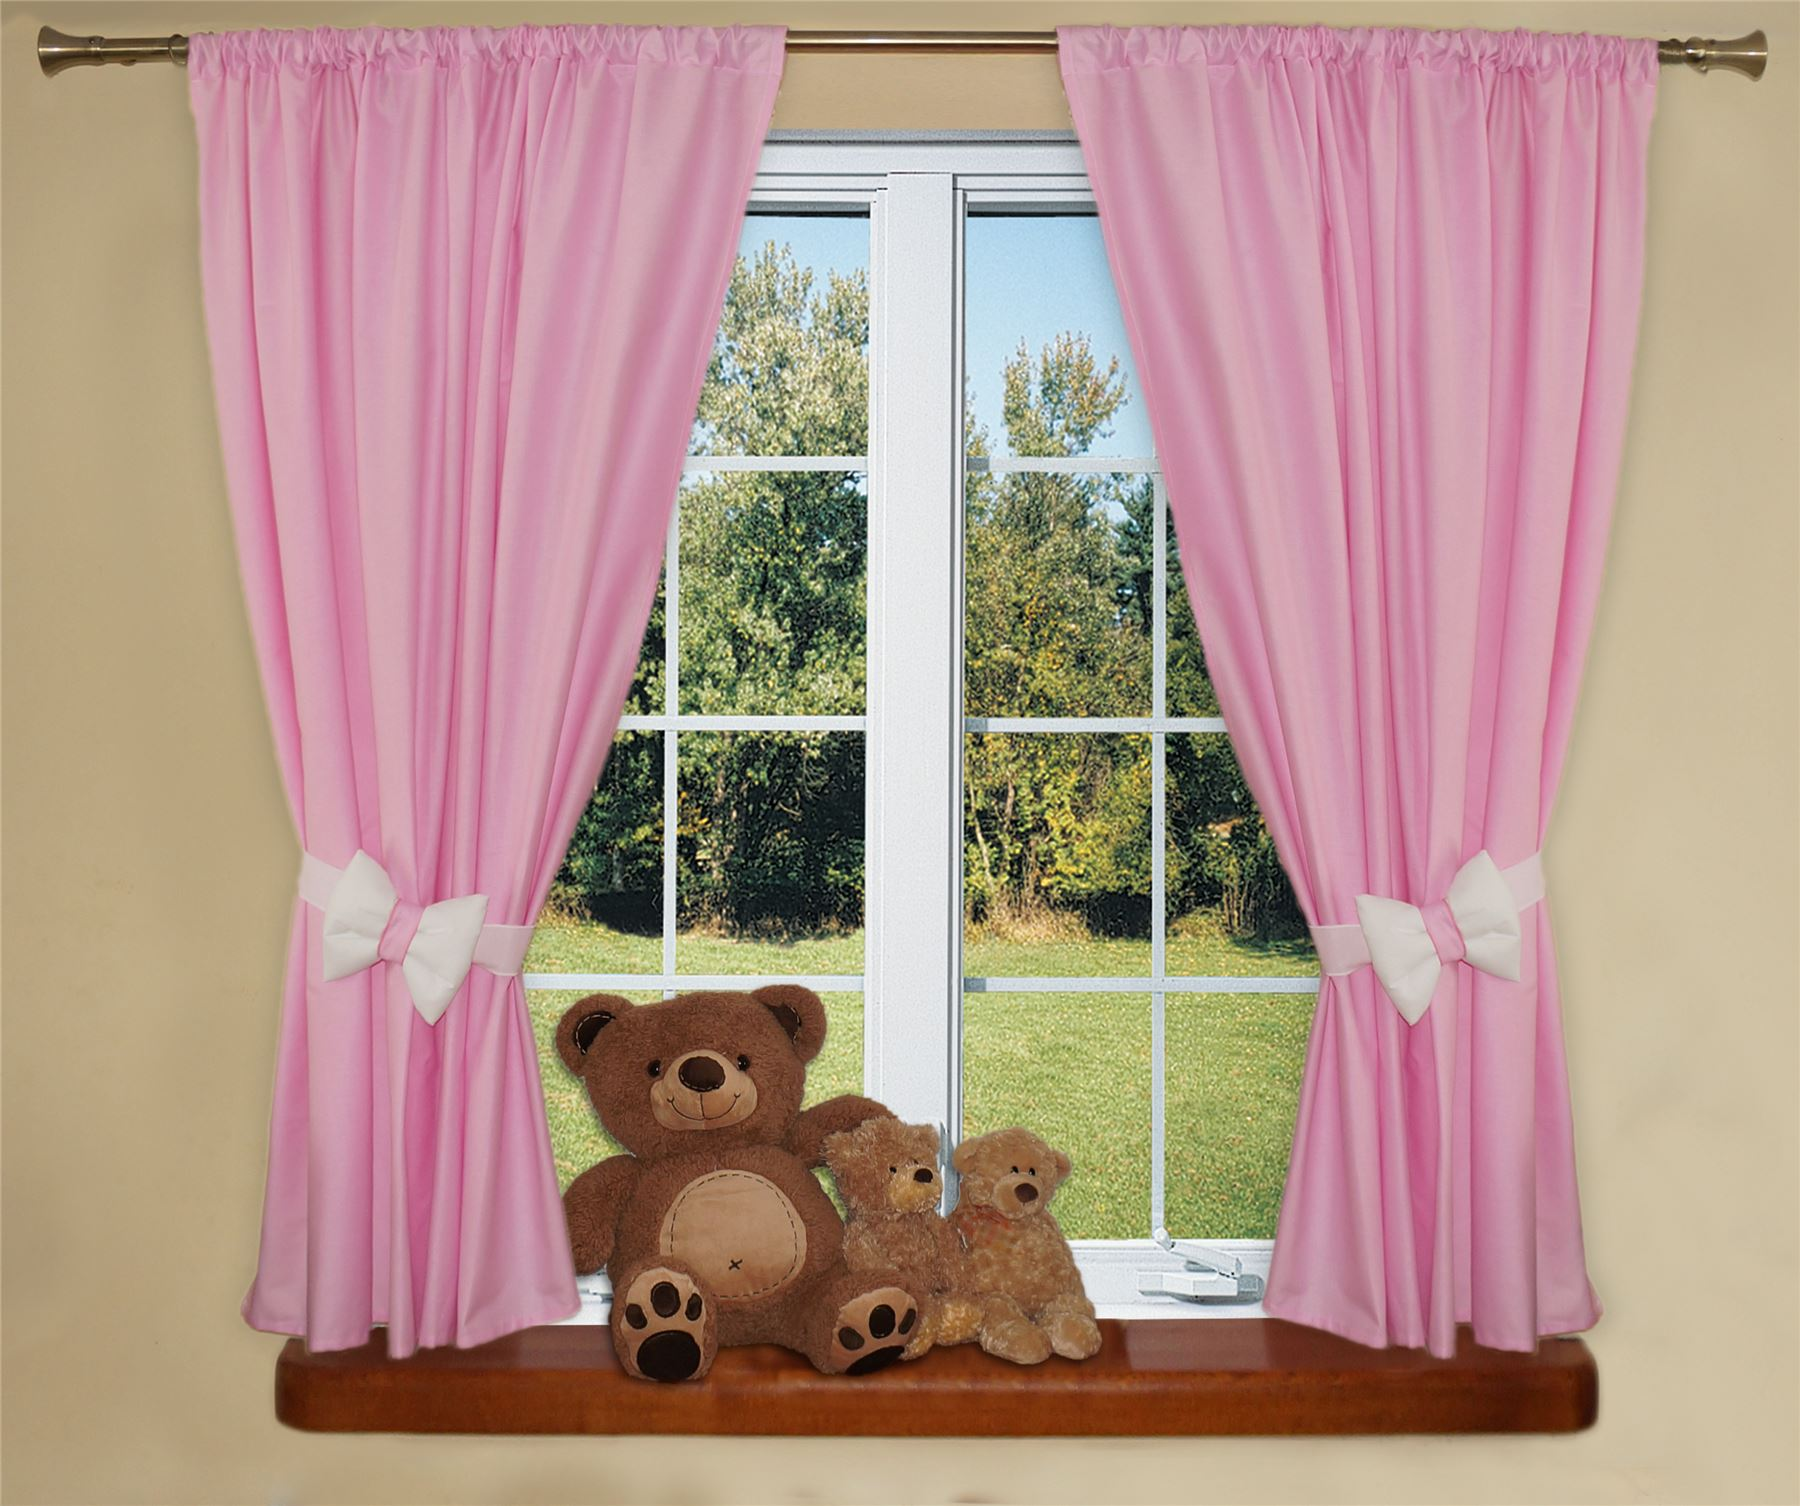 Baby Nursery Curtains Pink Curtains Kids Curtains Pair